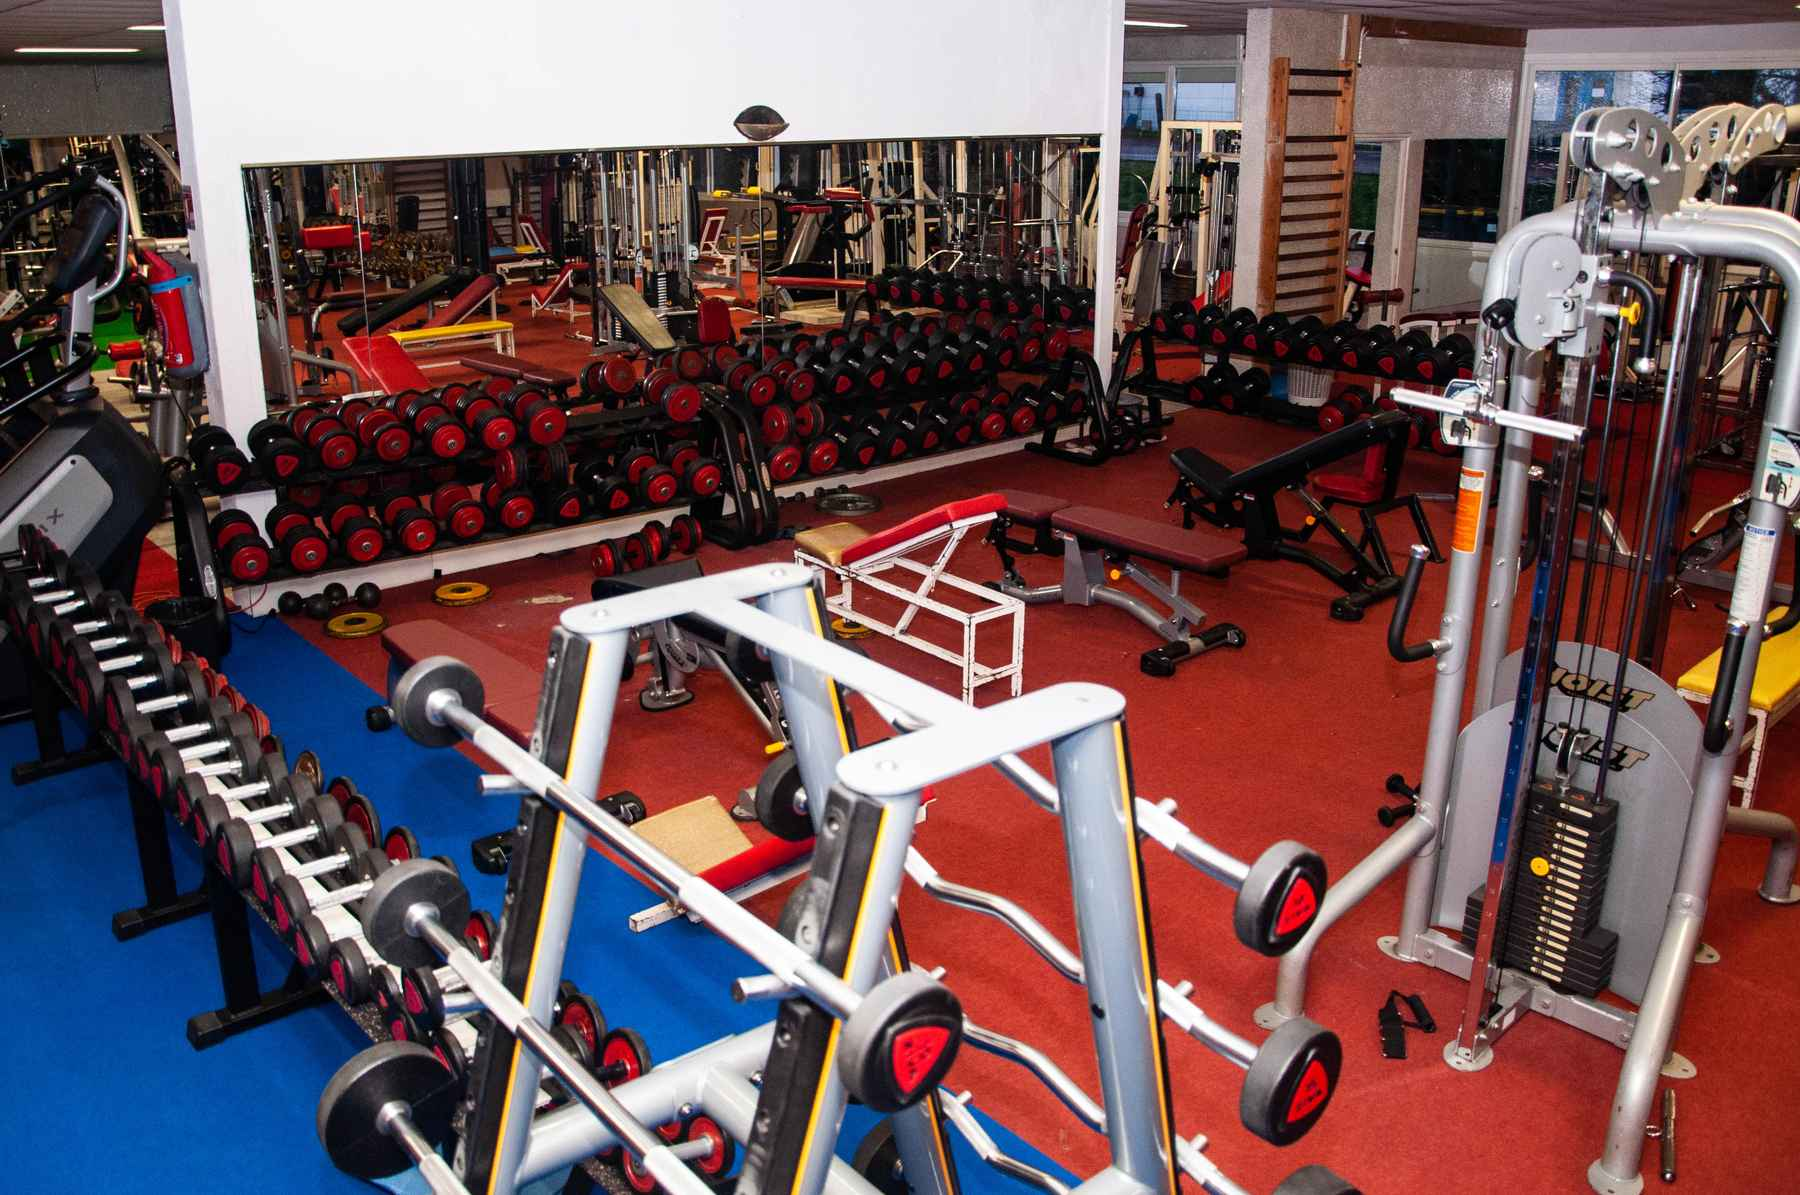 Fleming Sportcenter Club De Sport Fitness Et Remise En Forme A Caen